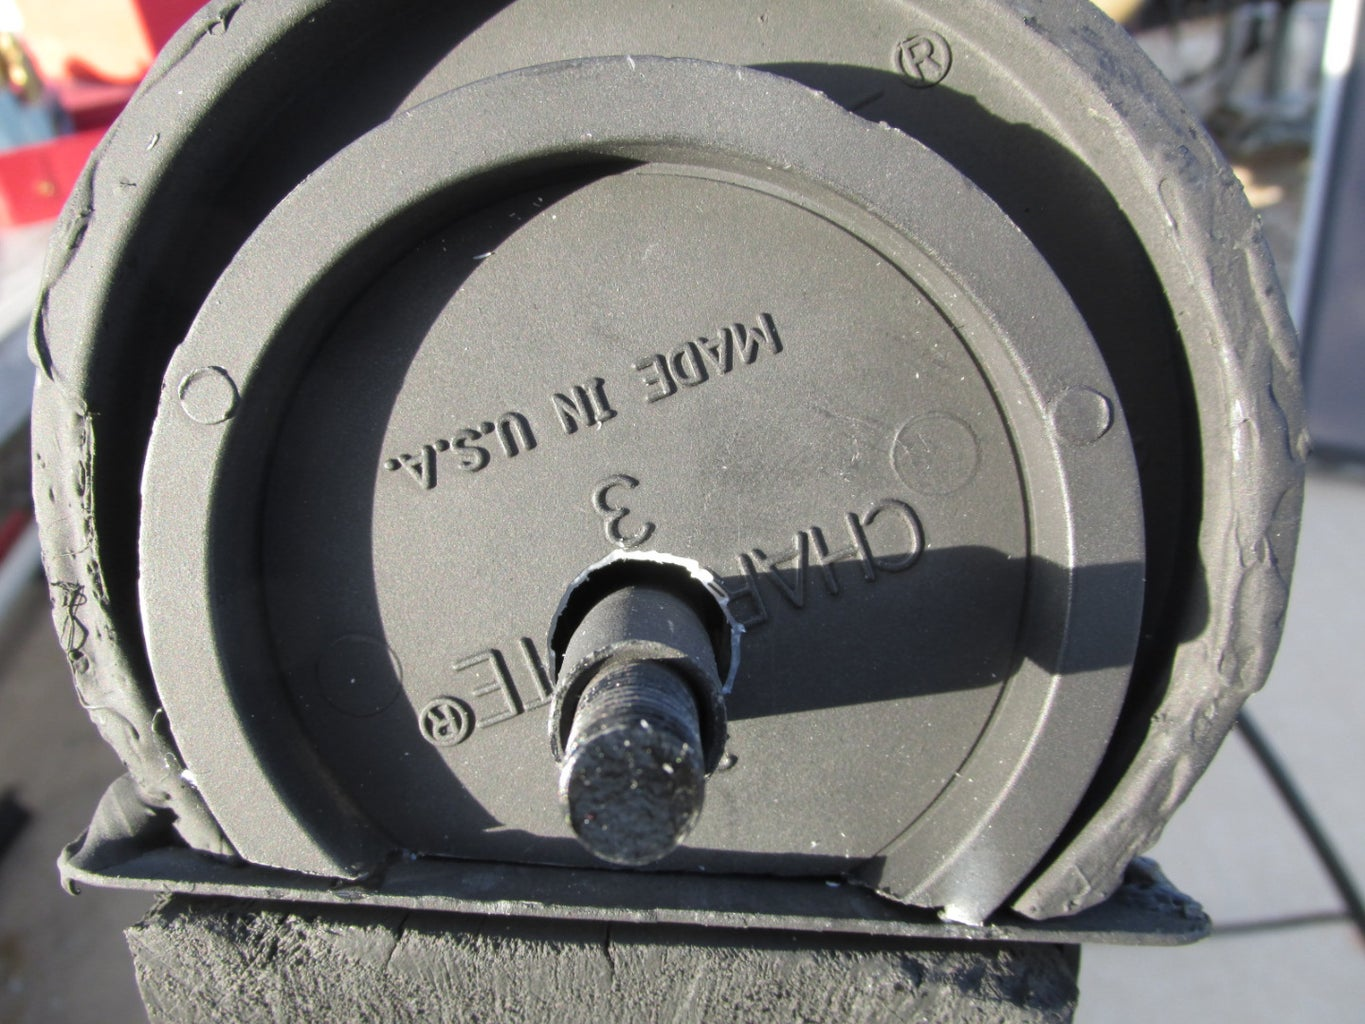 Generator Cover and Wiring, Using Coaxial Cable and Connectors